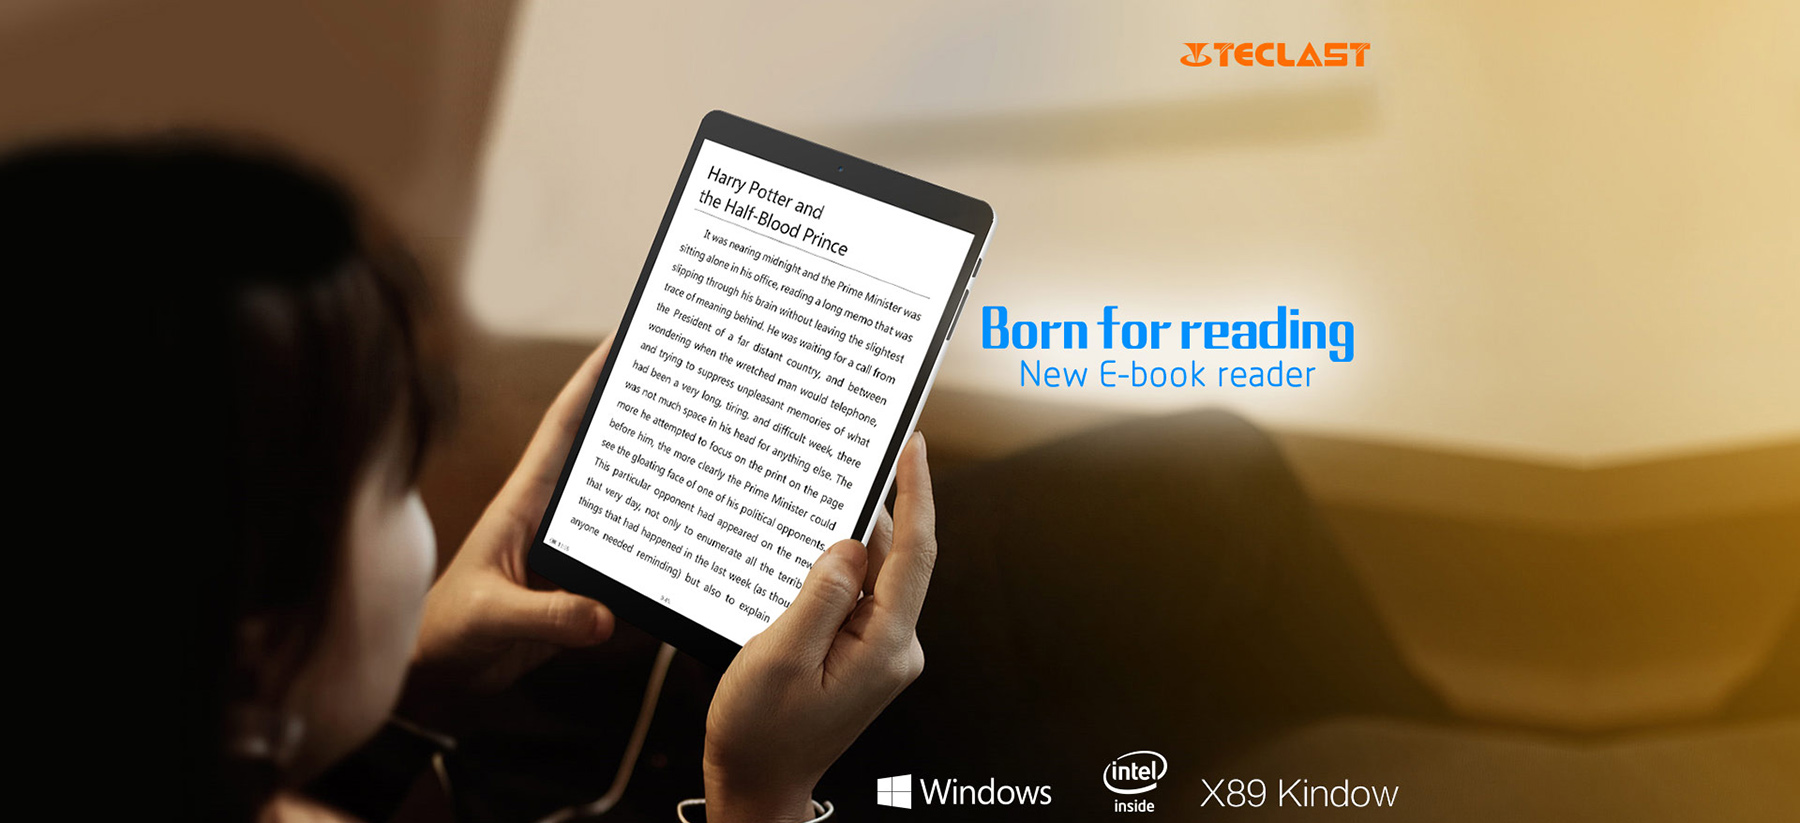 Teclast X89 Kindow Reader Tablet Pc 8346 Free Shipping Wire Christmas Lights Wiring Review Ebooks Windows 10 Android 44 75 Inch Ips Screen Intel